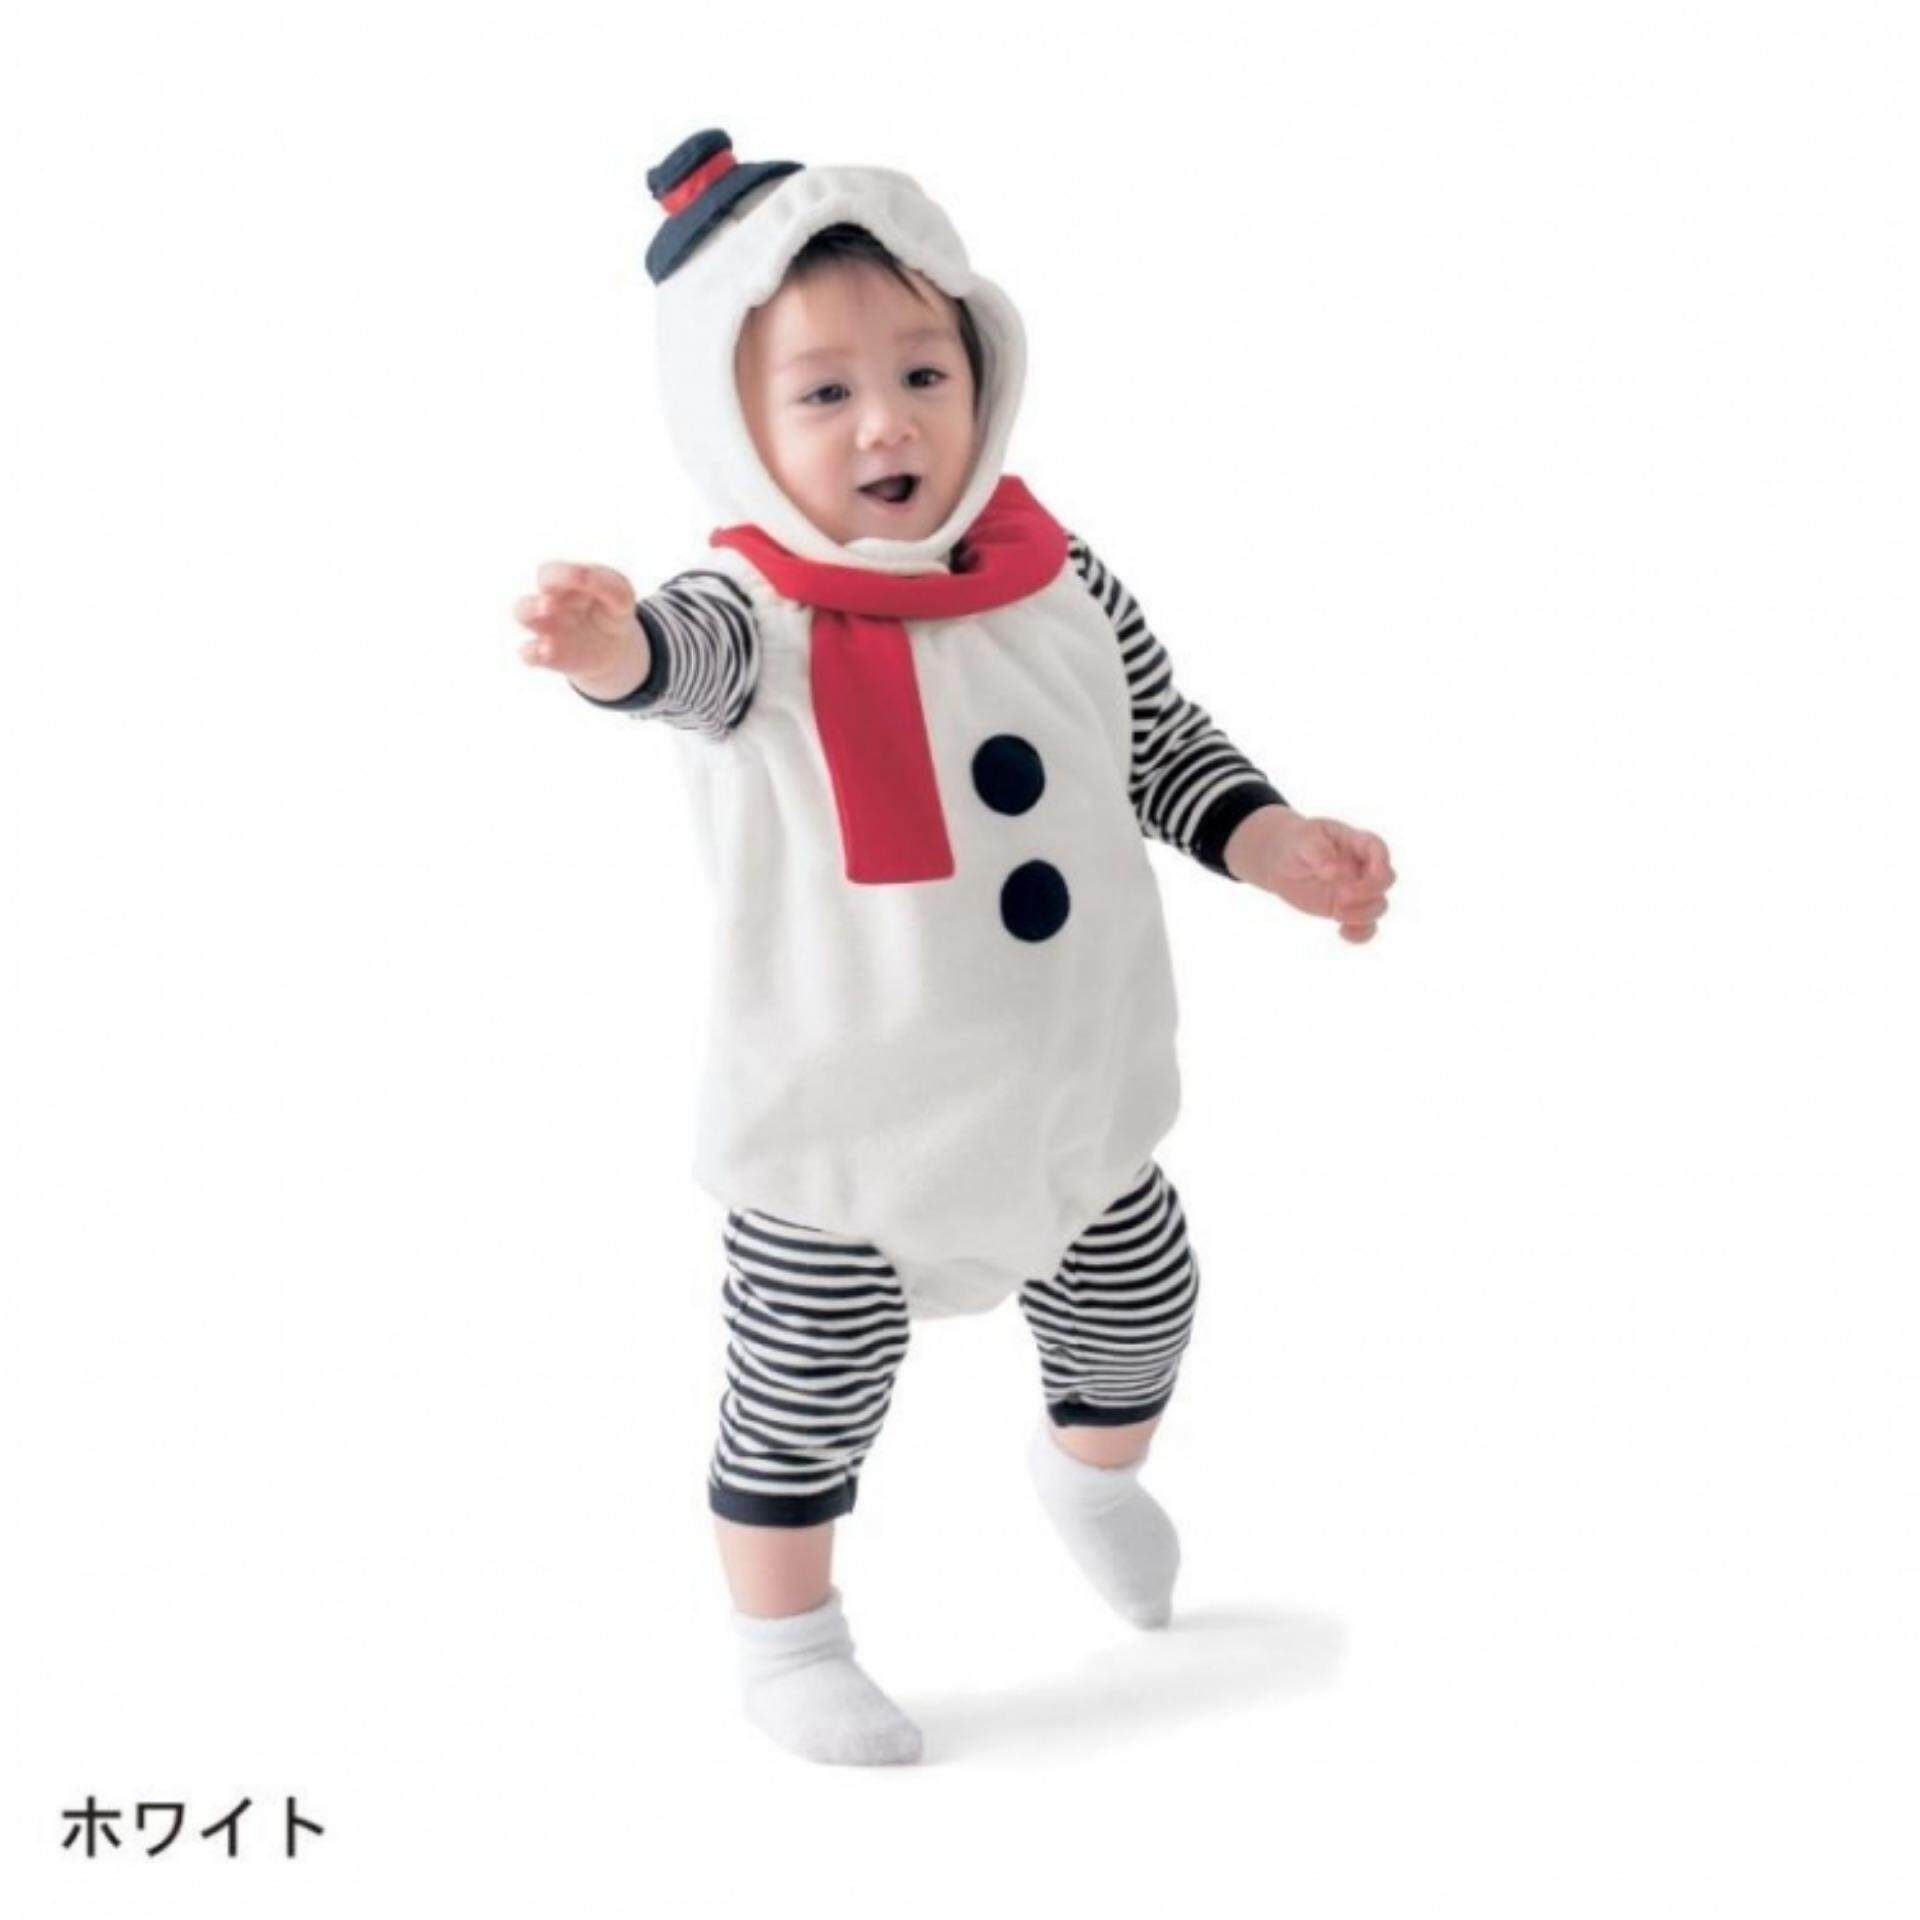 Baby Boy Halloween Costumes 12 18 Months   Baby Costumes For Sale Costumes For Toddlers Online Brands Prices